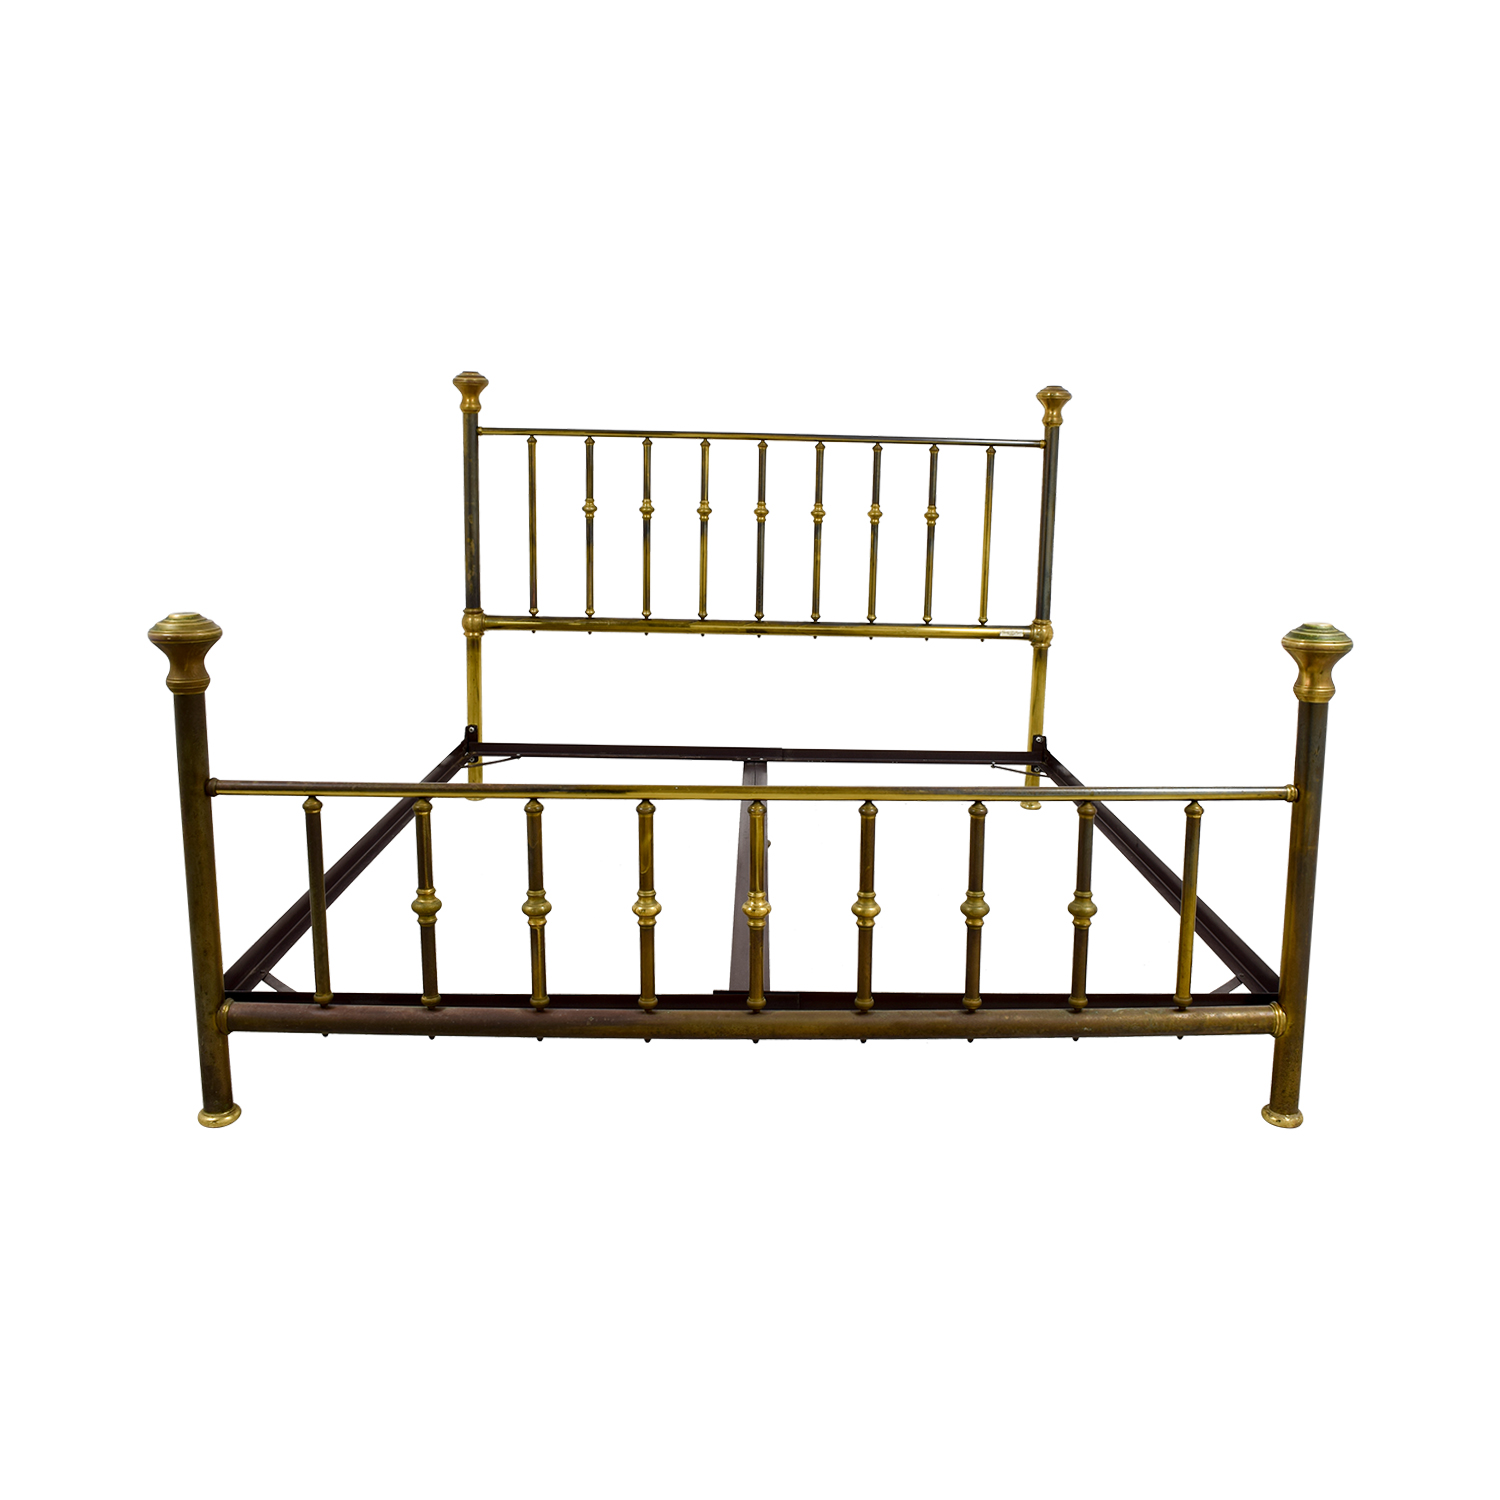 buy Charles P. Rodgers Putnam King Brass Bed Frame Charles P. Rodgers Beds